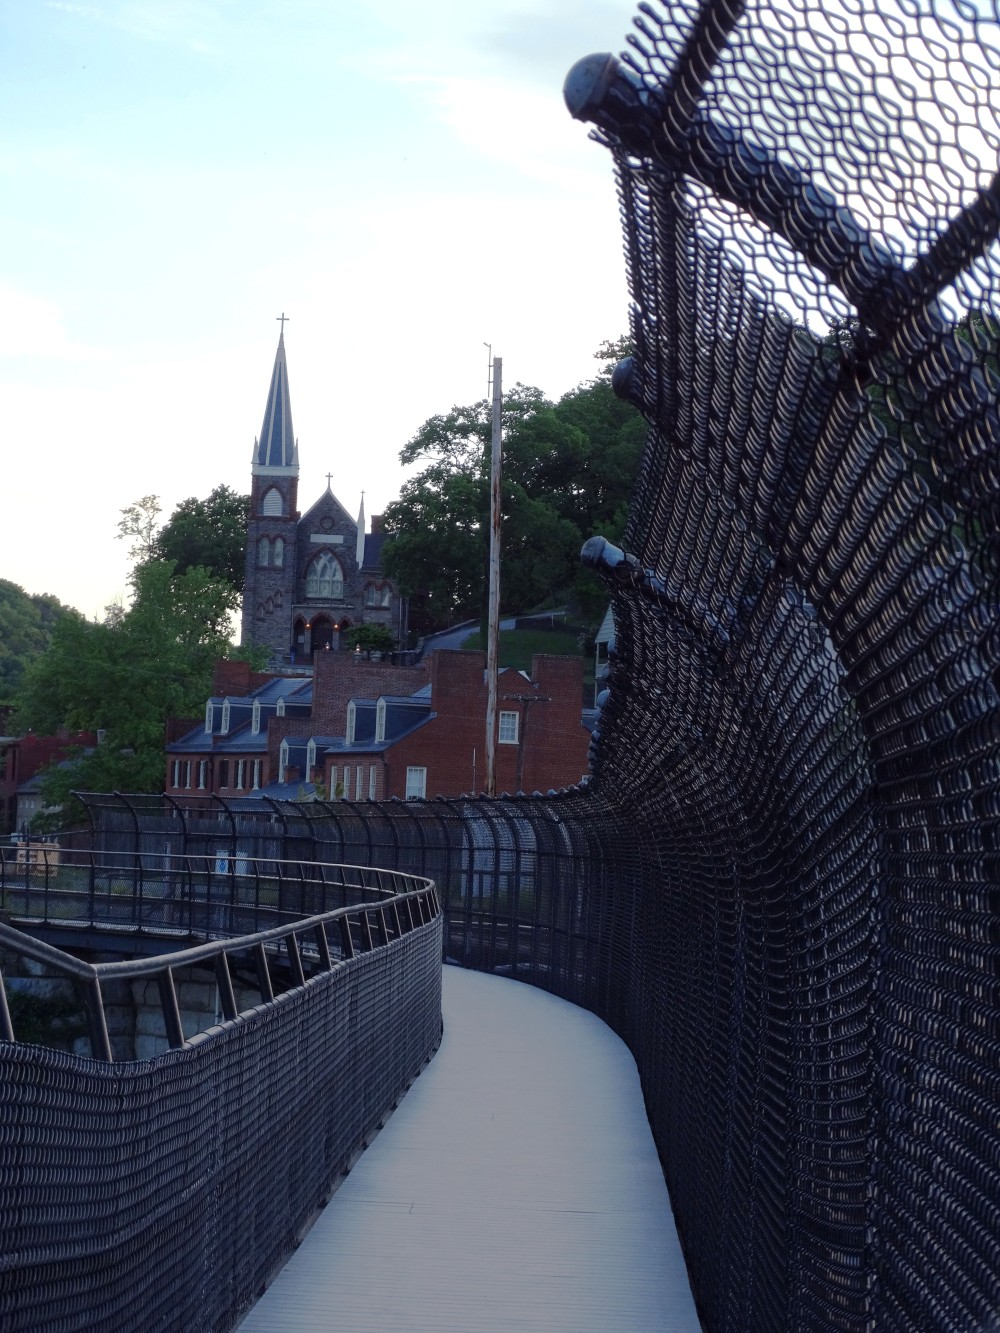 Image of a chain fence with Harpers Ferry in the background.